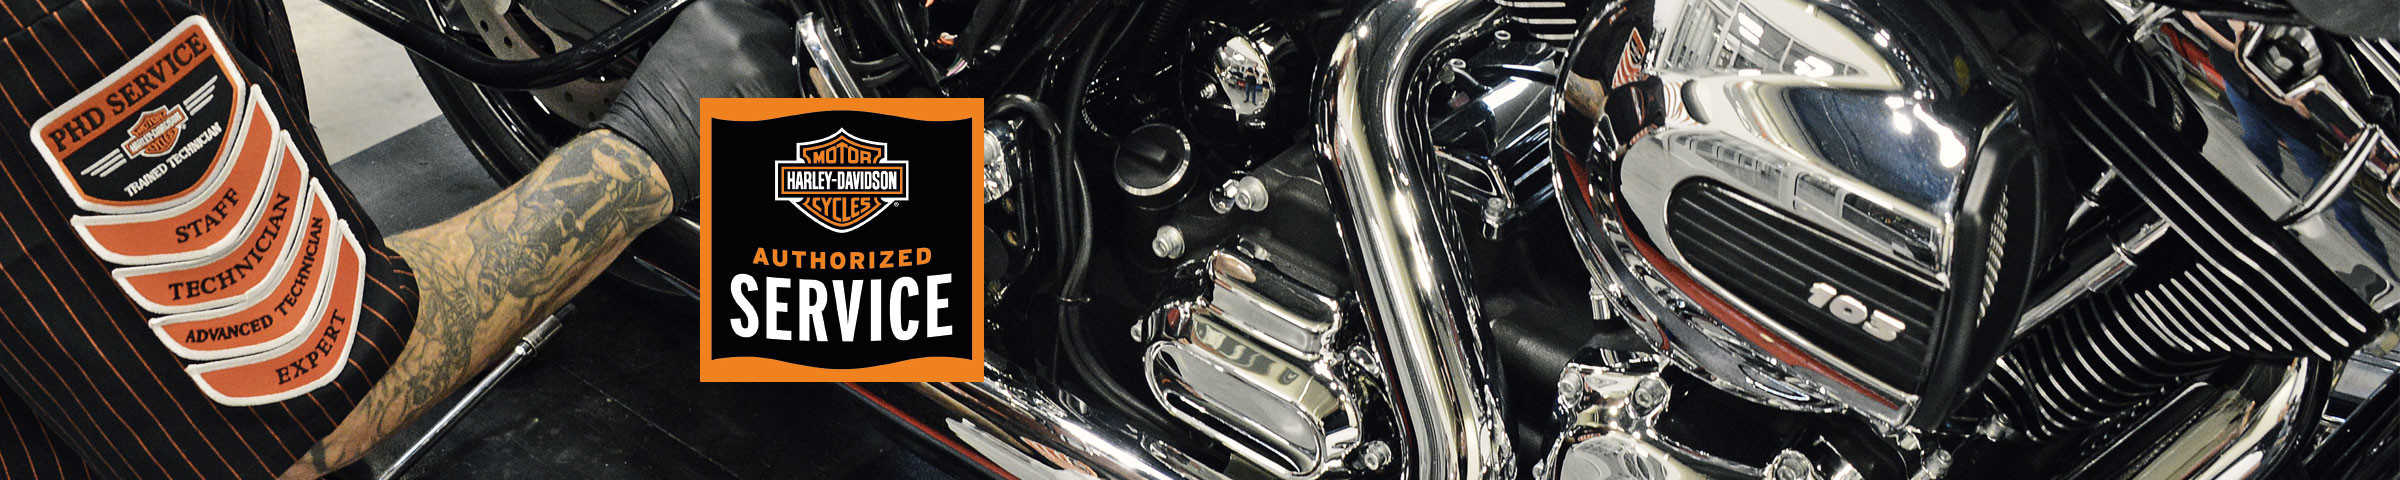 Lake of the Ozarks Harley-Davidson® Service Department